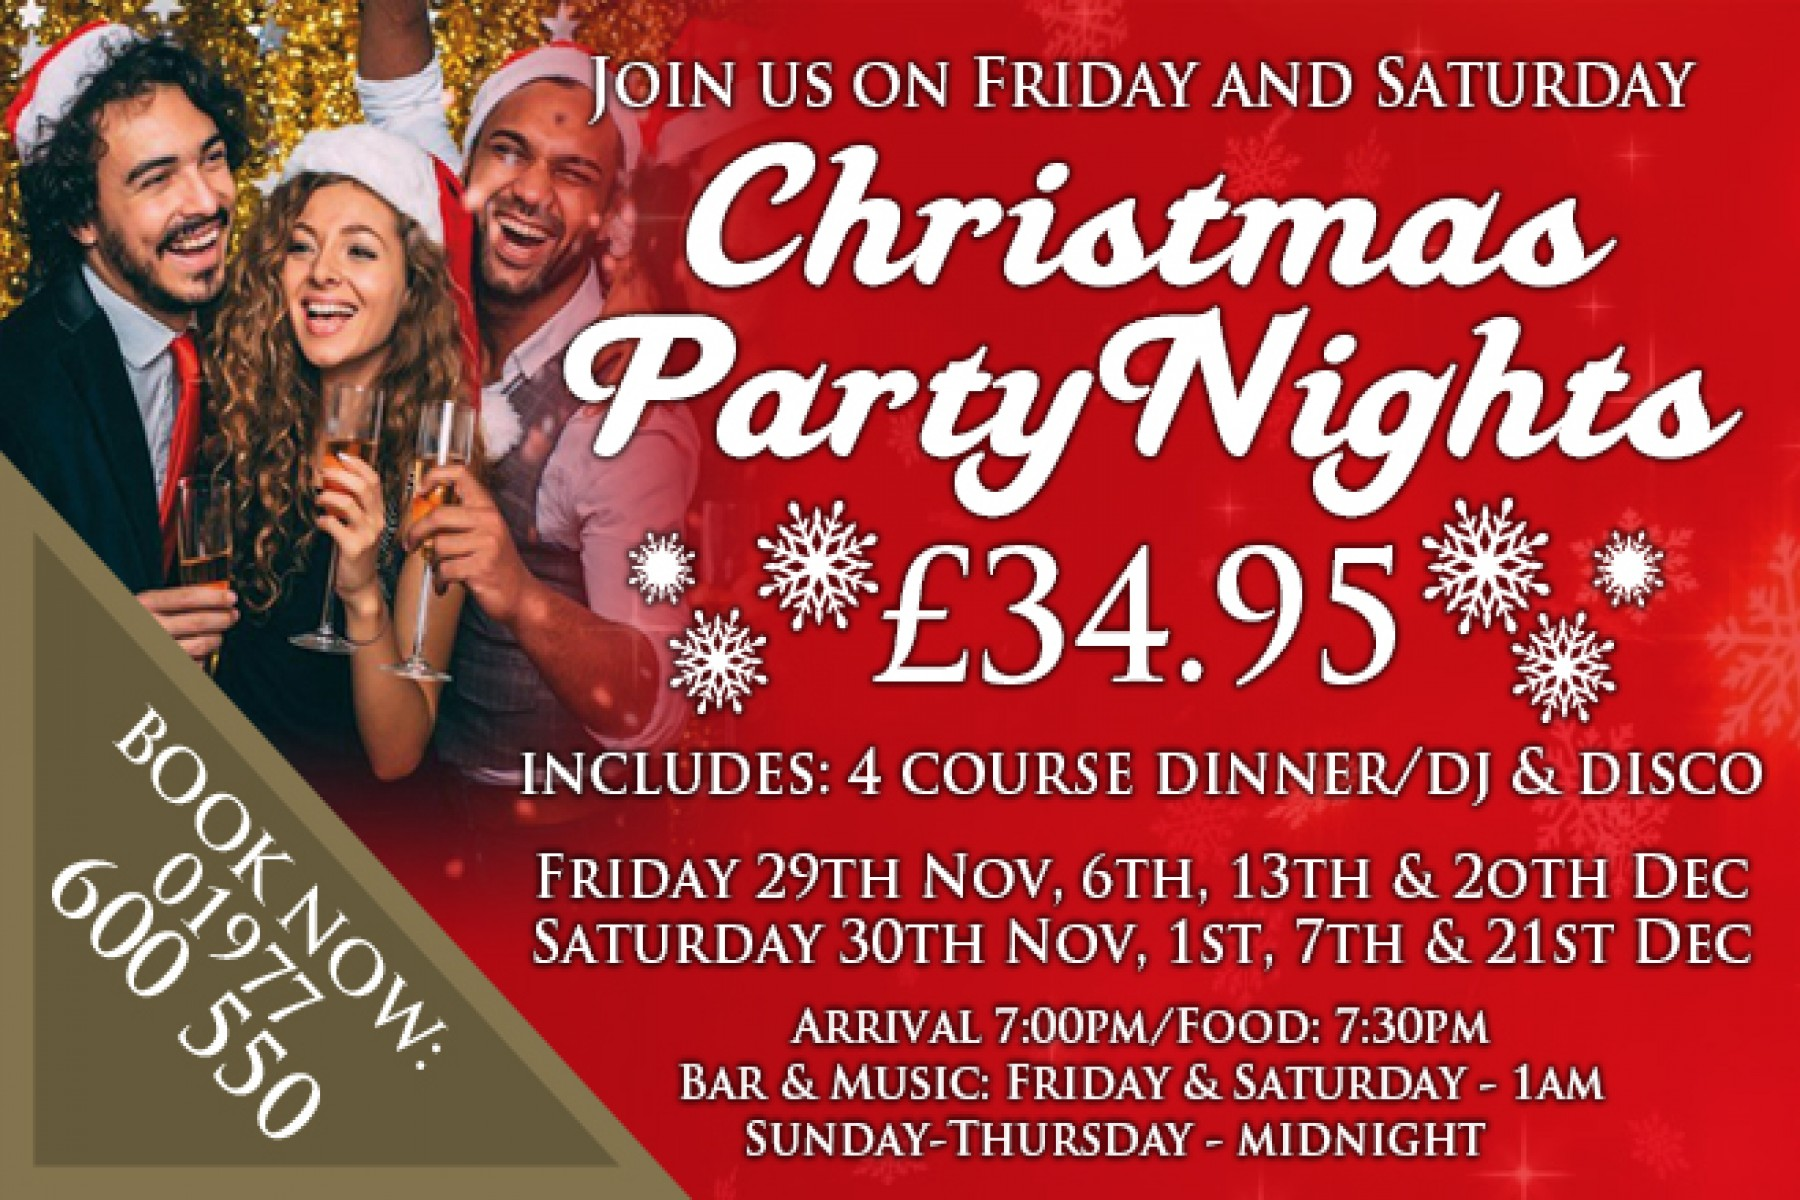 Christmas Party Night (13th December 2019)